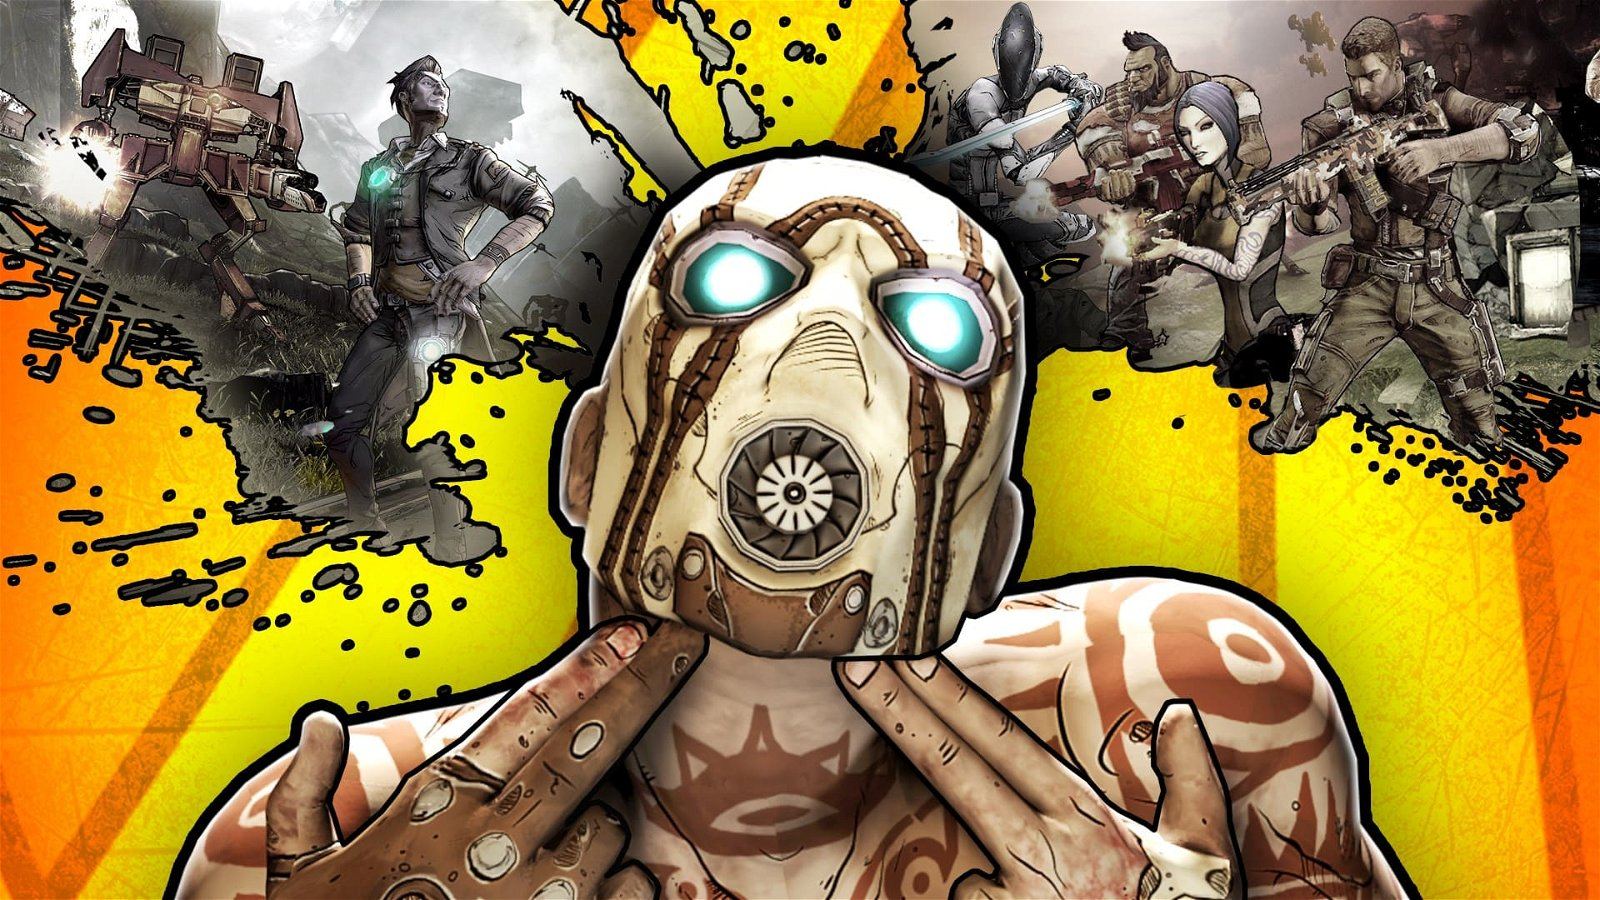 A Borderlands film adaptation is officially happening, with Eli Roth on board to direct. 1